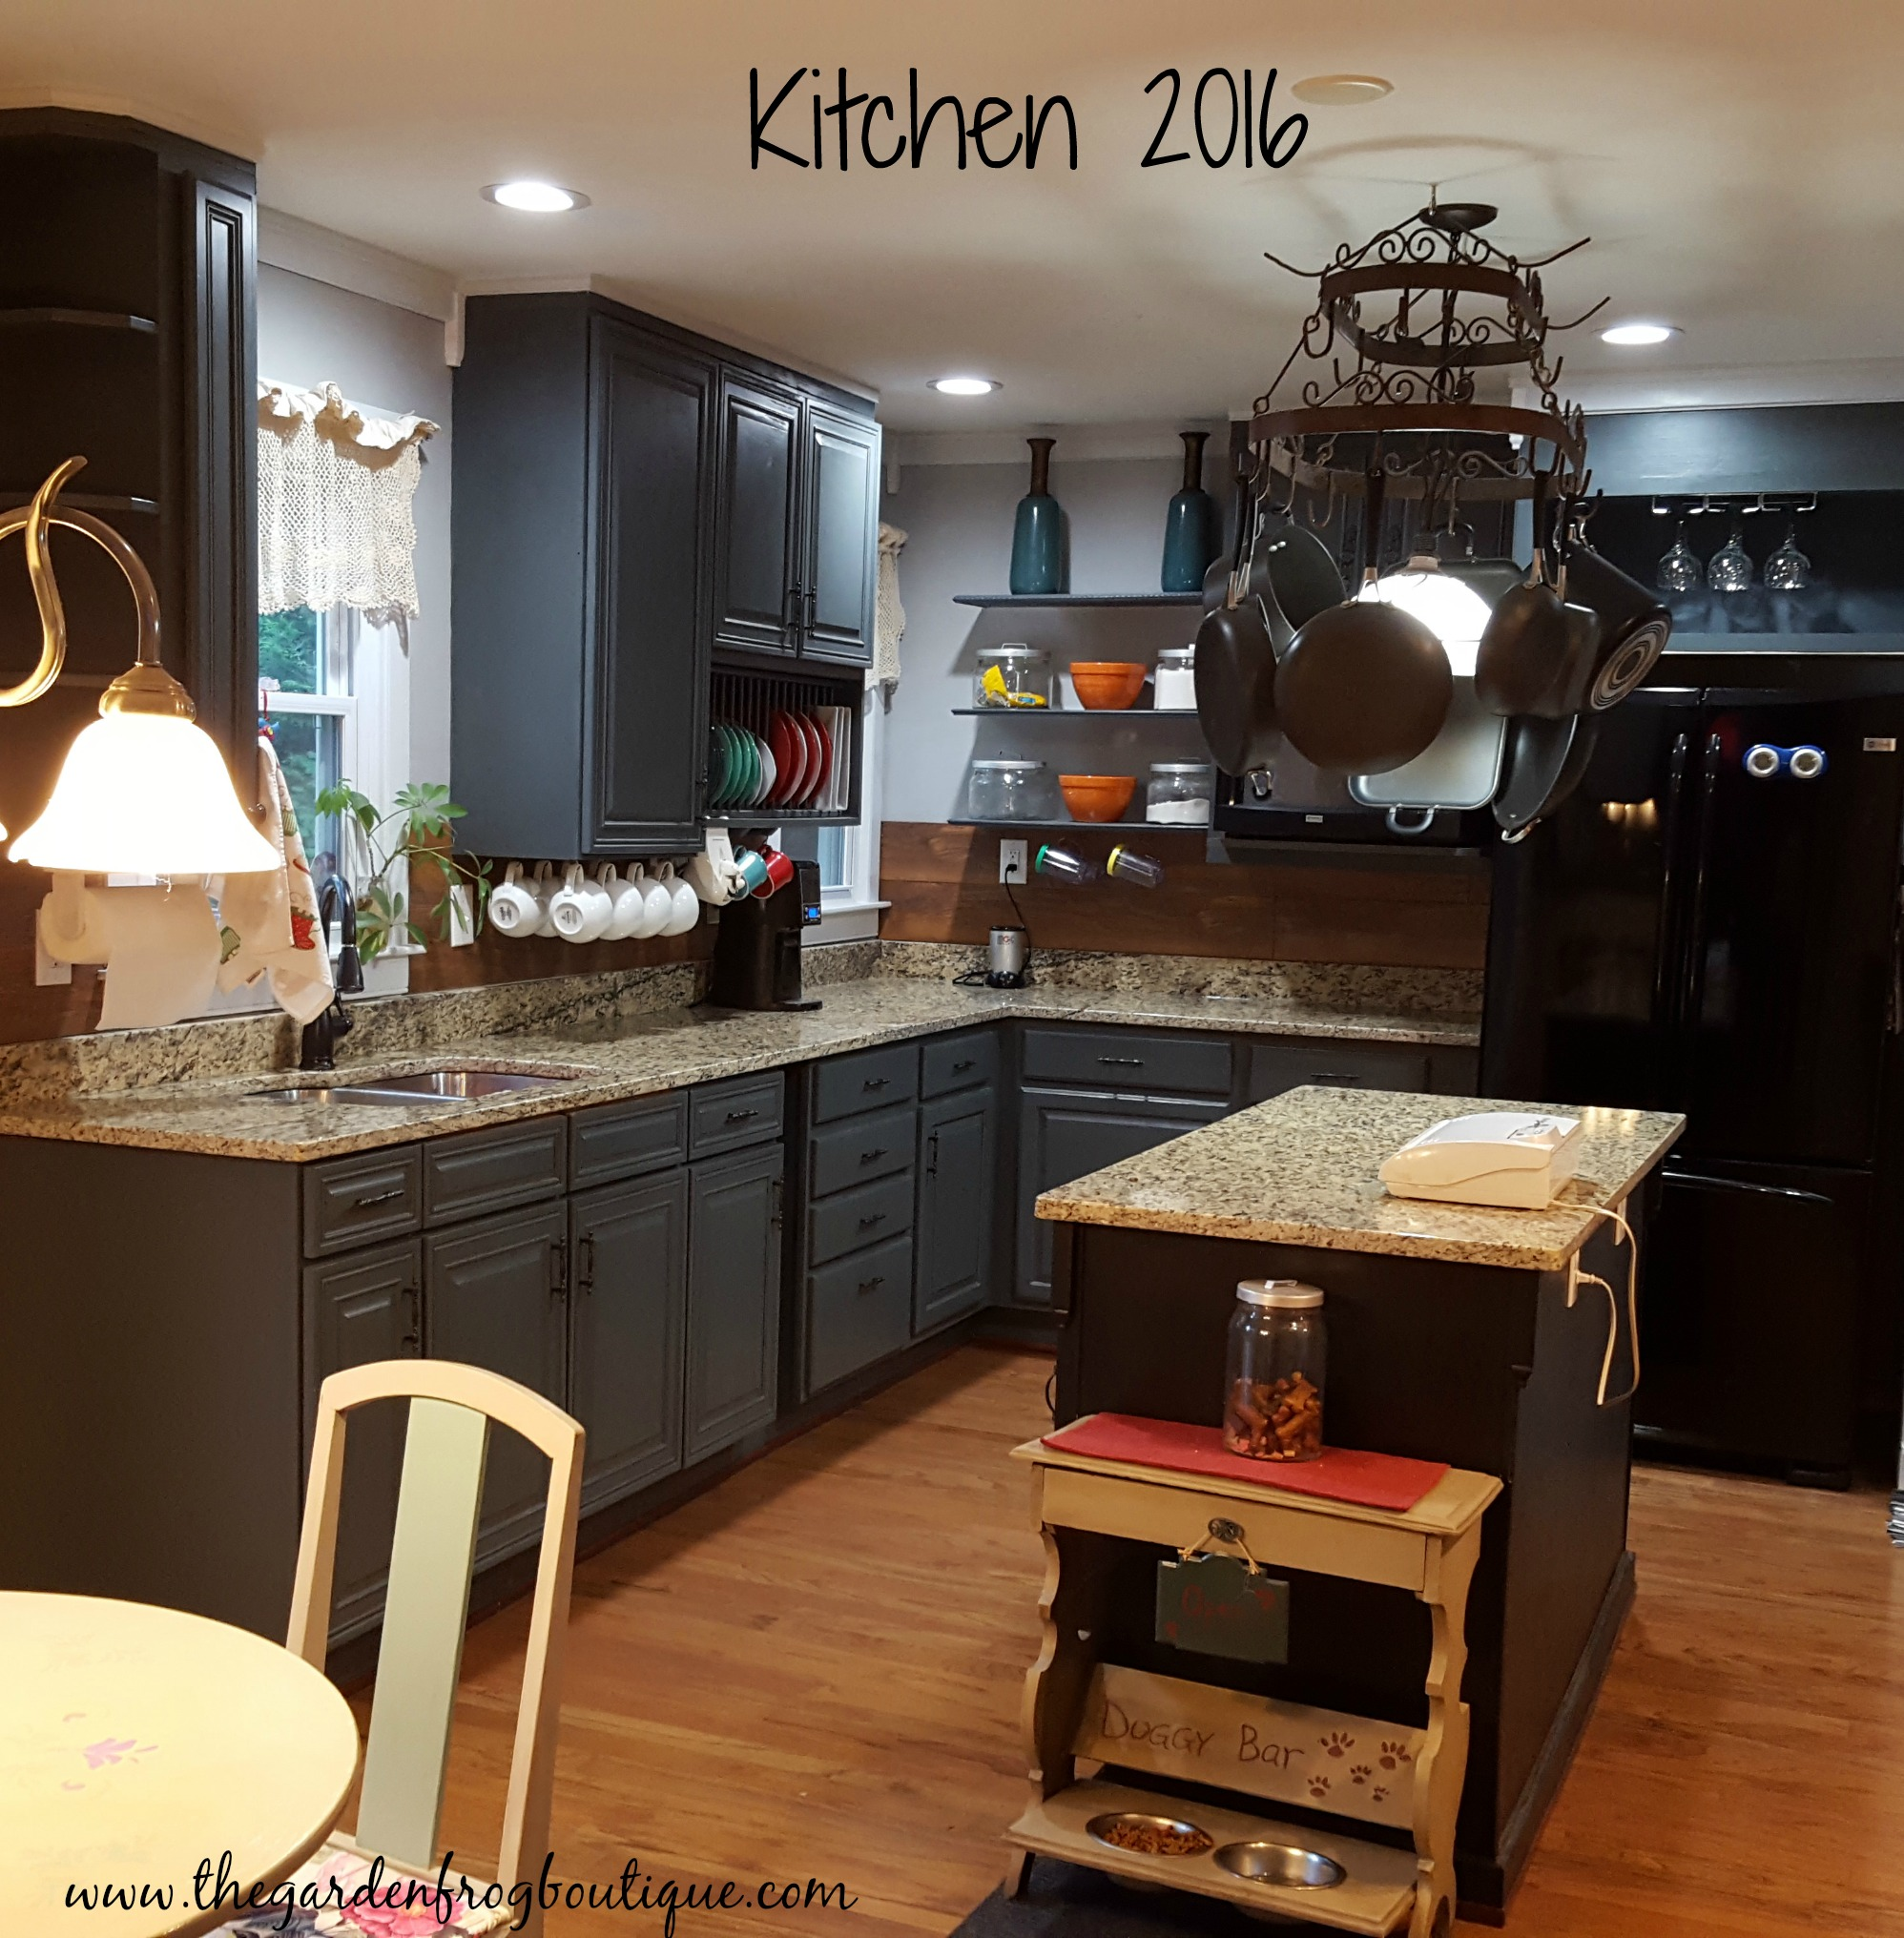 19 Budget Friendly Kitchen Makeover Ideas: Kitchen Makeover On A Tight Budget